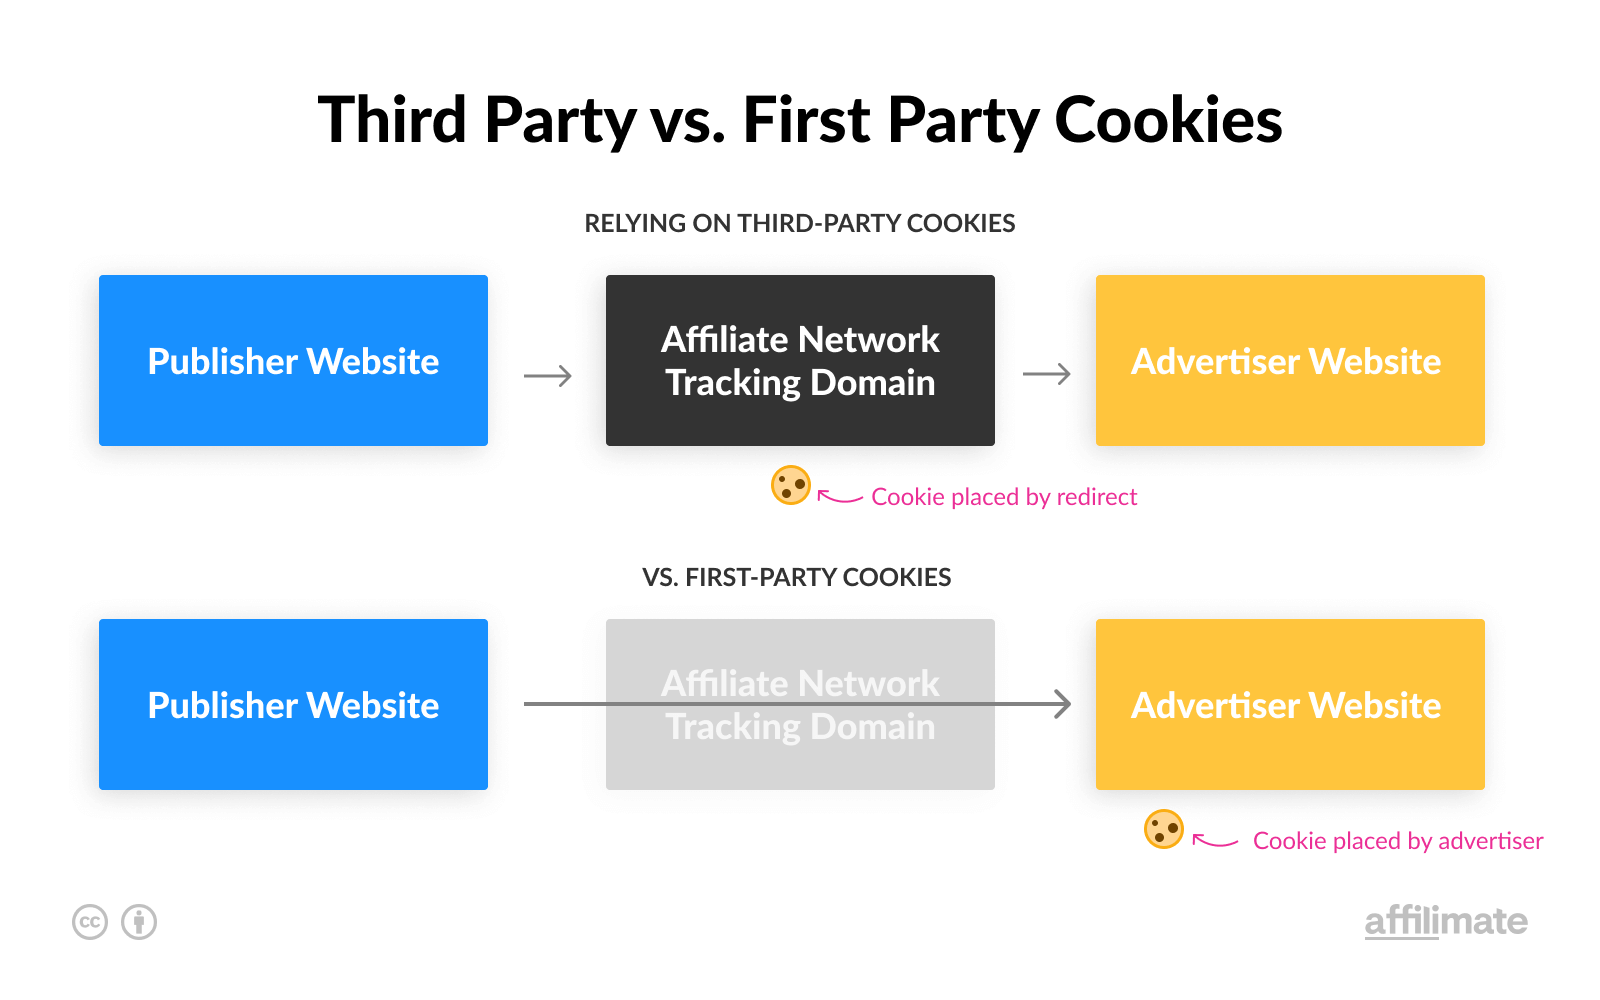 First Party vs Third Party Cookies